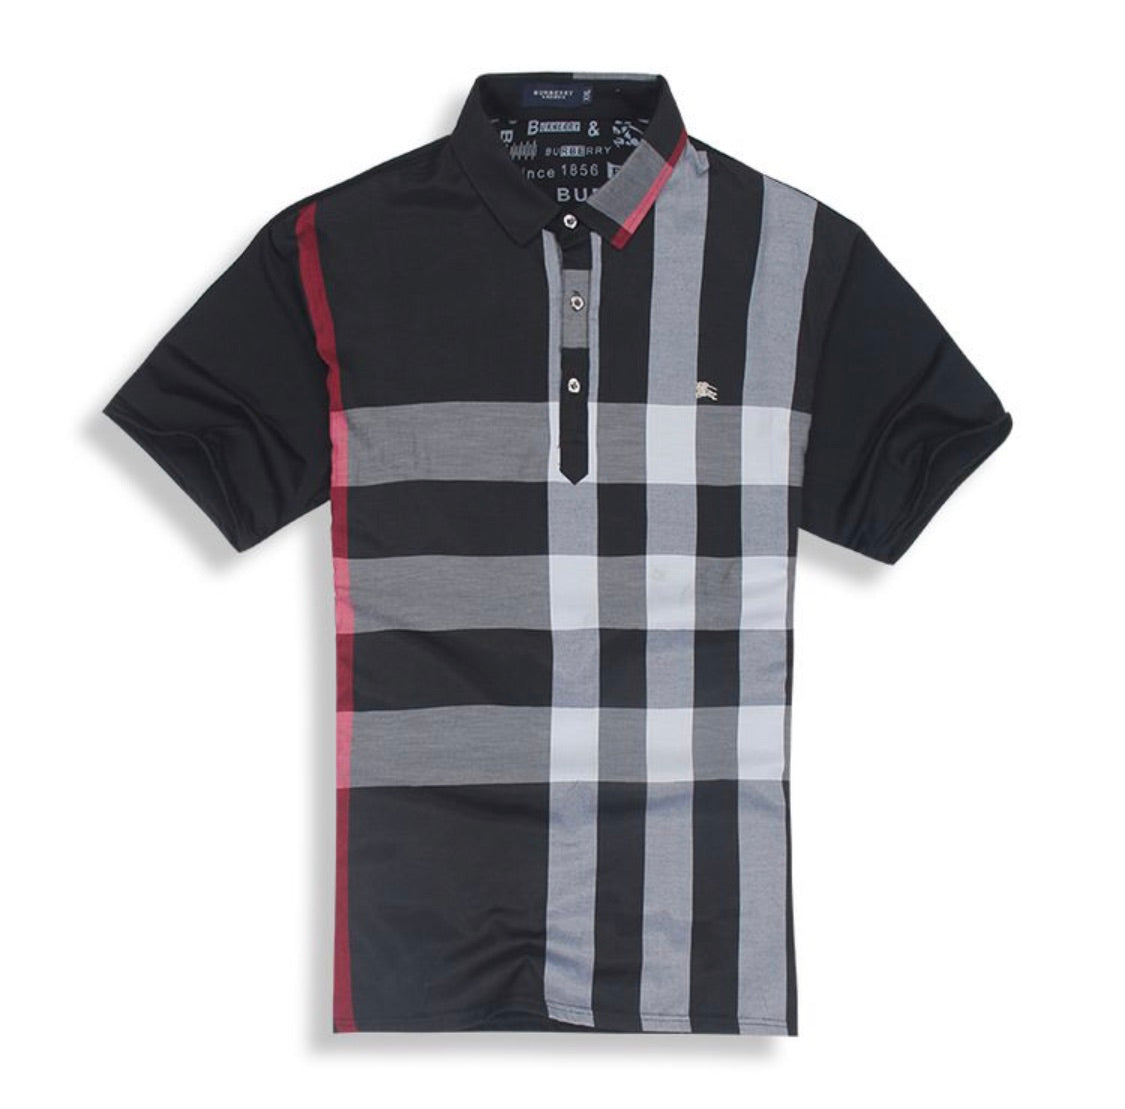 62b4ab566 Load image into Gallery viewer, BURBERRY MENS POLO SHIRT ...